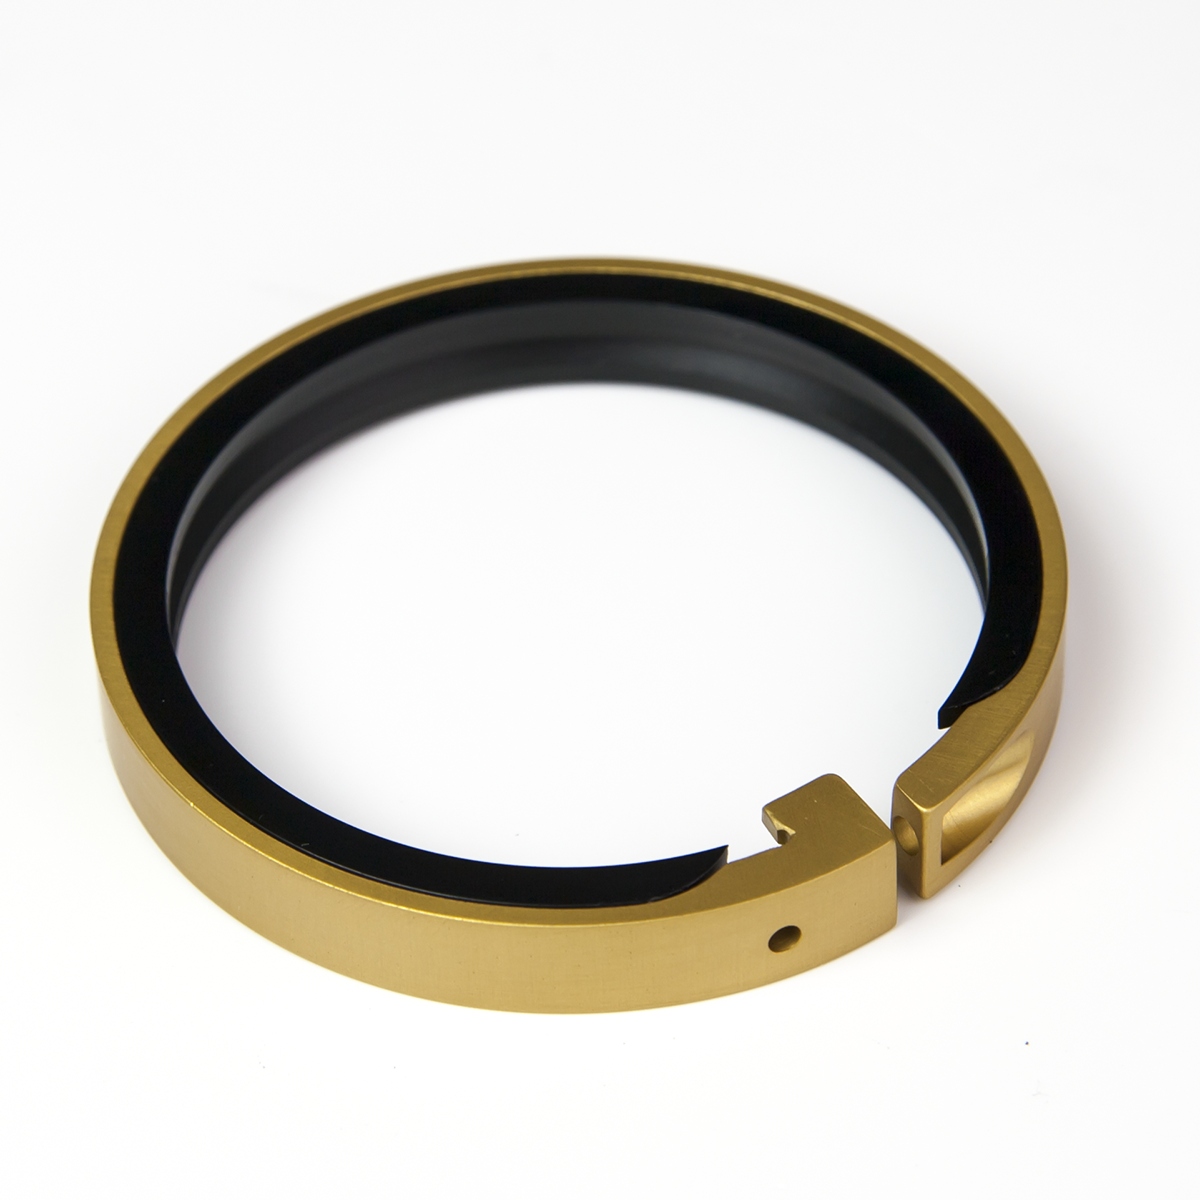 Clamp Ring Assembly For Lamination Collar - Humeral Rotator